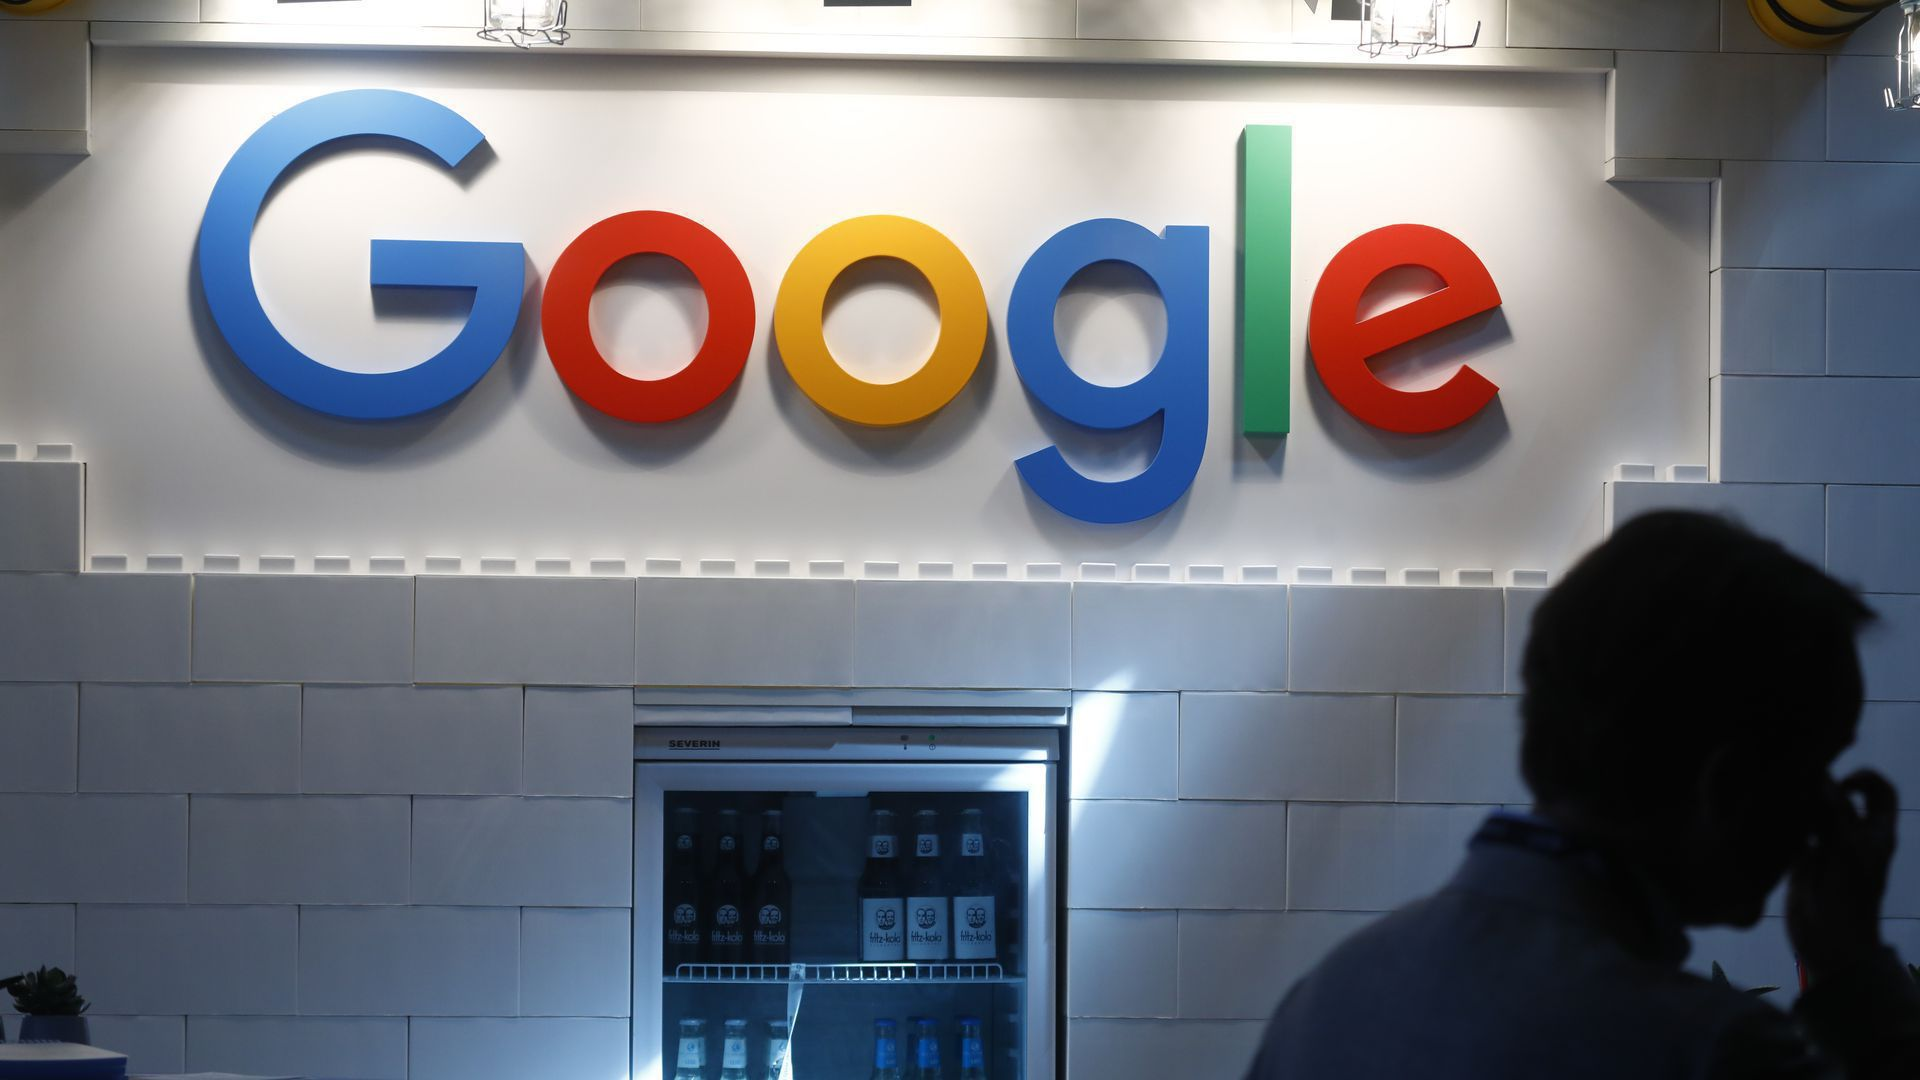 Google logo on wall over a soft-drink fridge